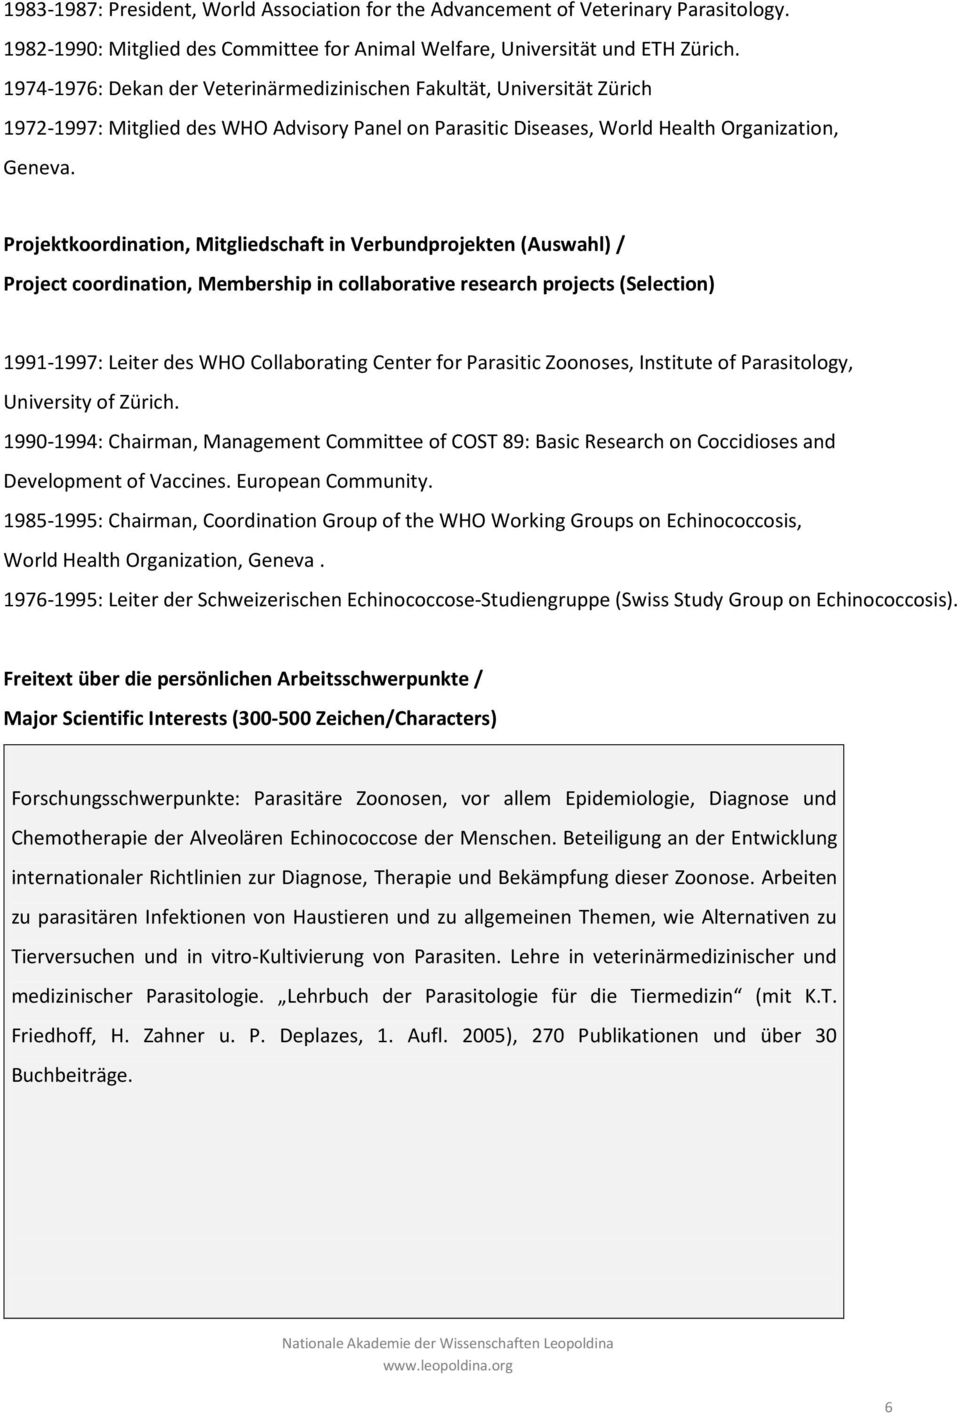 Projektkoordination, Mitgliedschaft in Verbundprojekten (Auswahl) / Project coordination, Membership in collaborative research projects (Selection) 1991-1997: Leiter des WHO Collaborating Center for